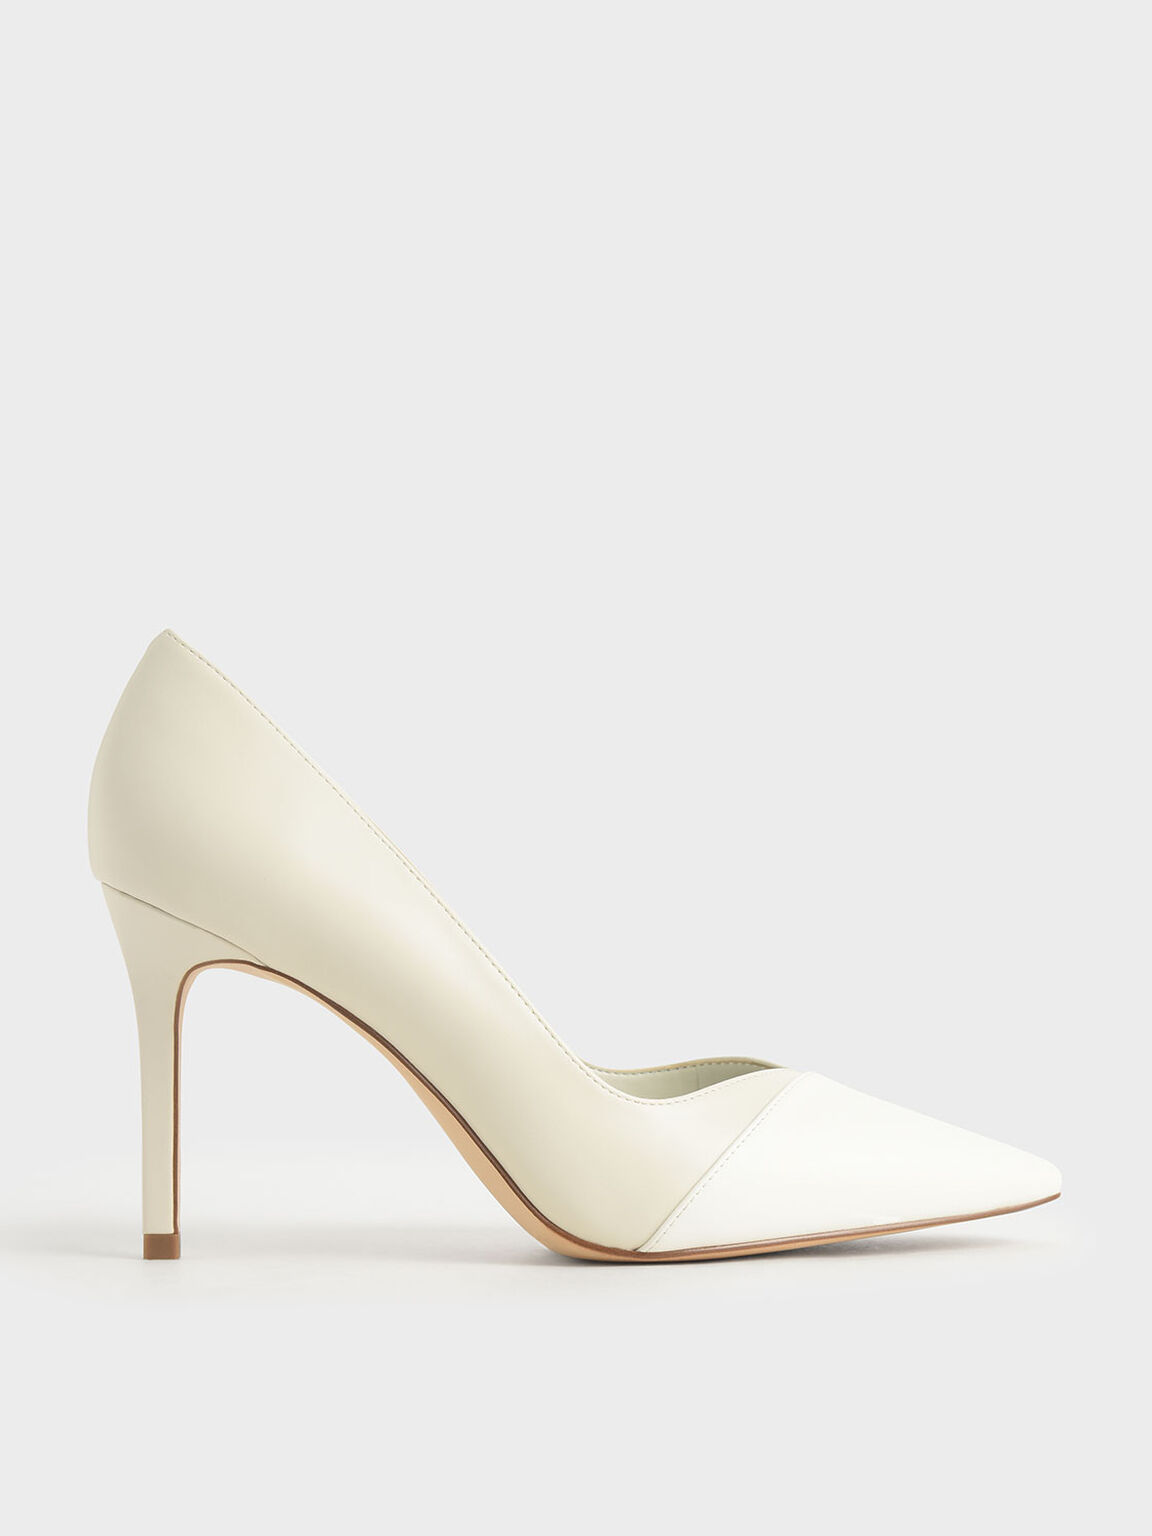 Stiletto Pumps, White, hi-res